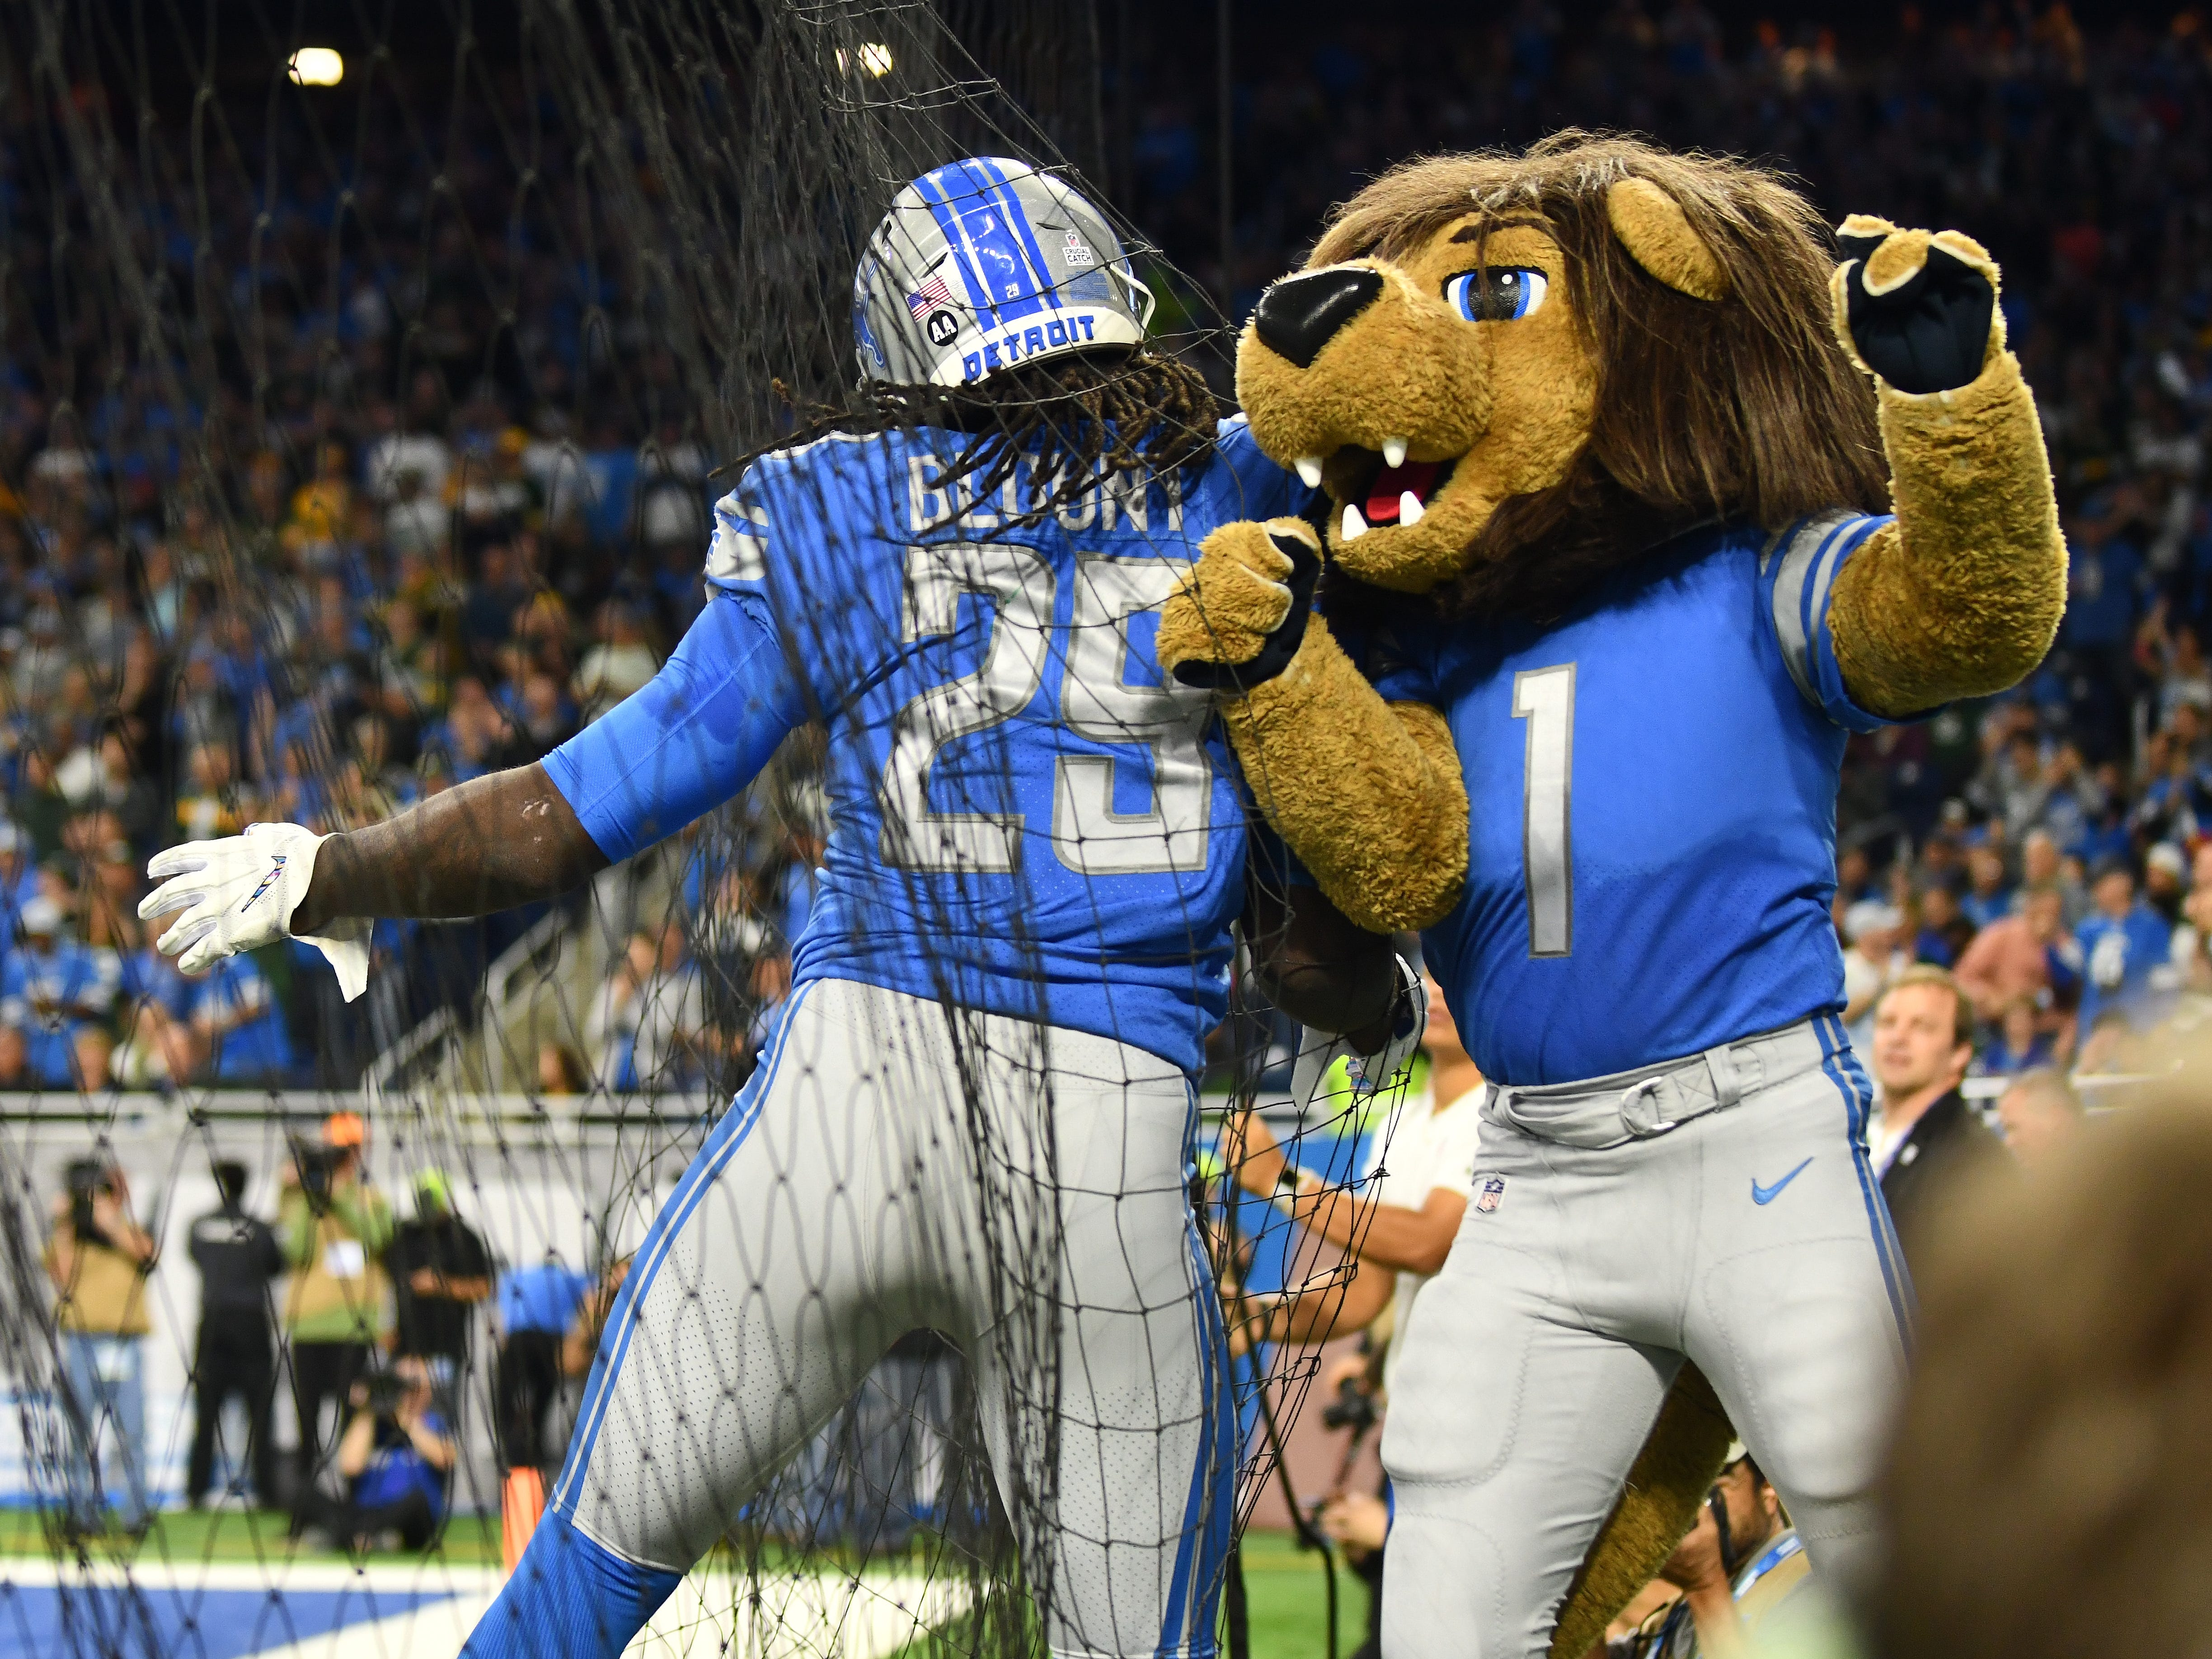 Lions' LeGarrette Blount celebrates with Roary after Blount touchdown in the first quarter.